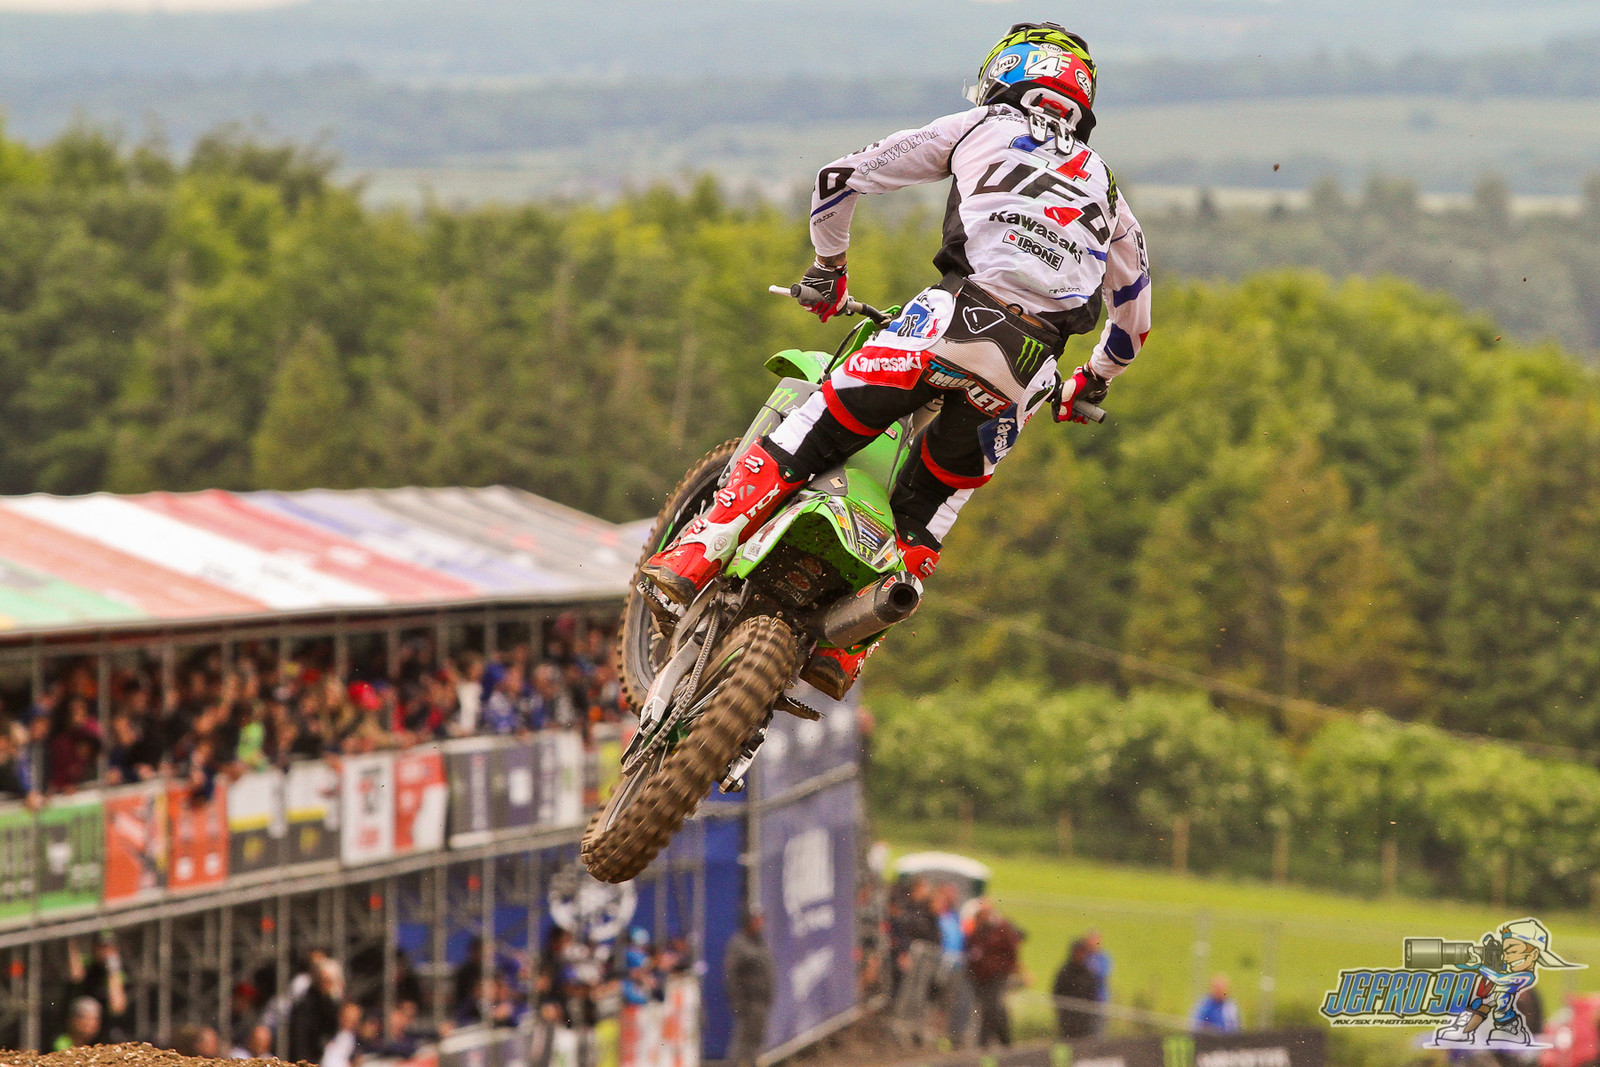 Dylan Ferrandis - Photo Gallery: MXGP of Great Britain - Motocross Pictures - Vital MX